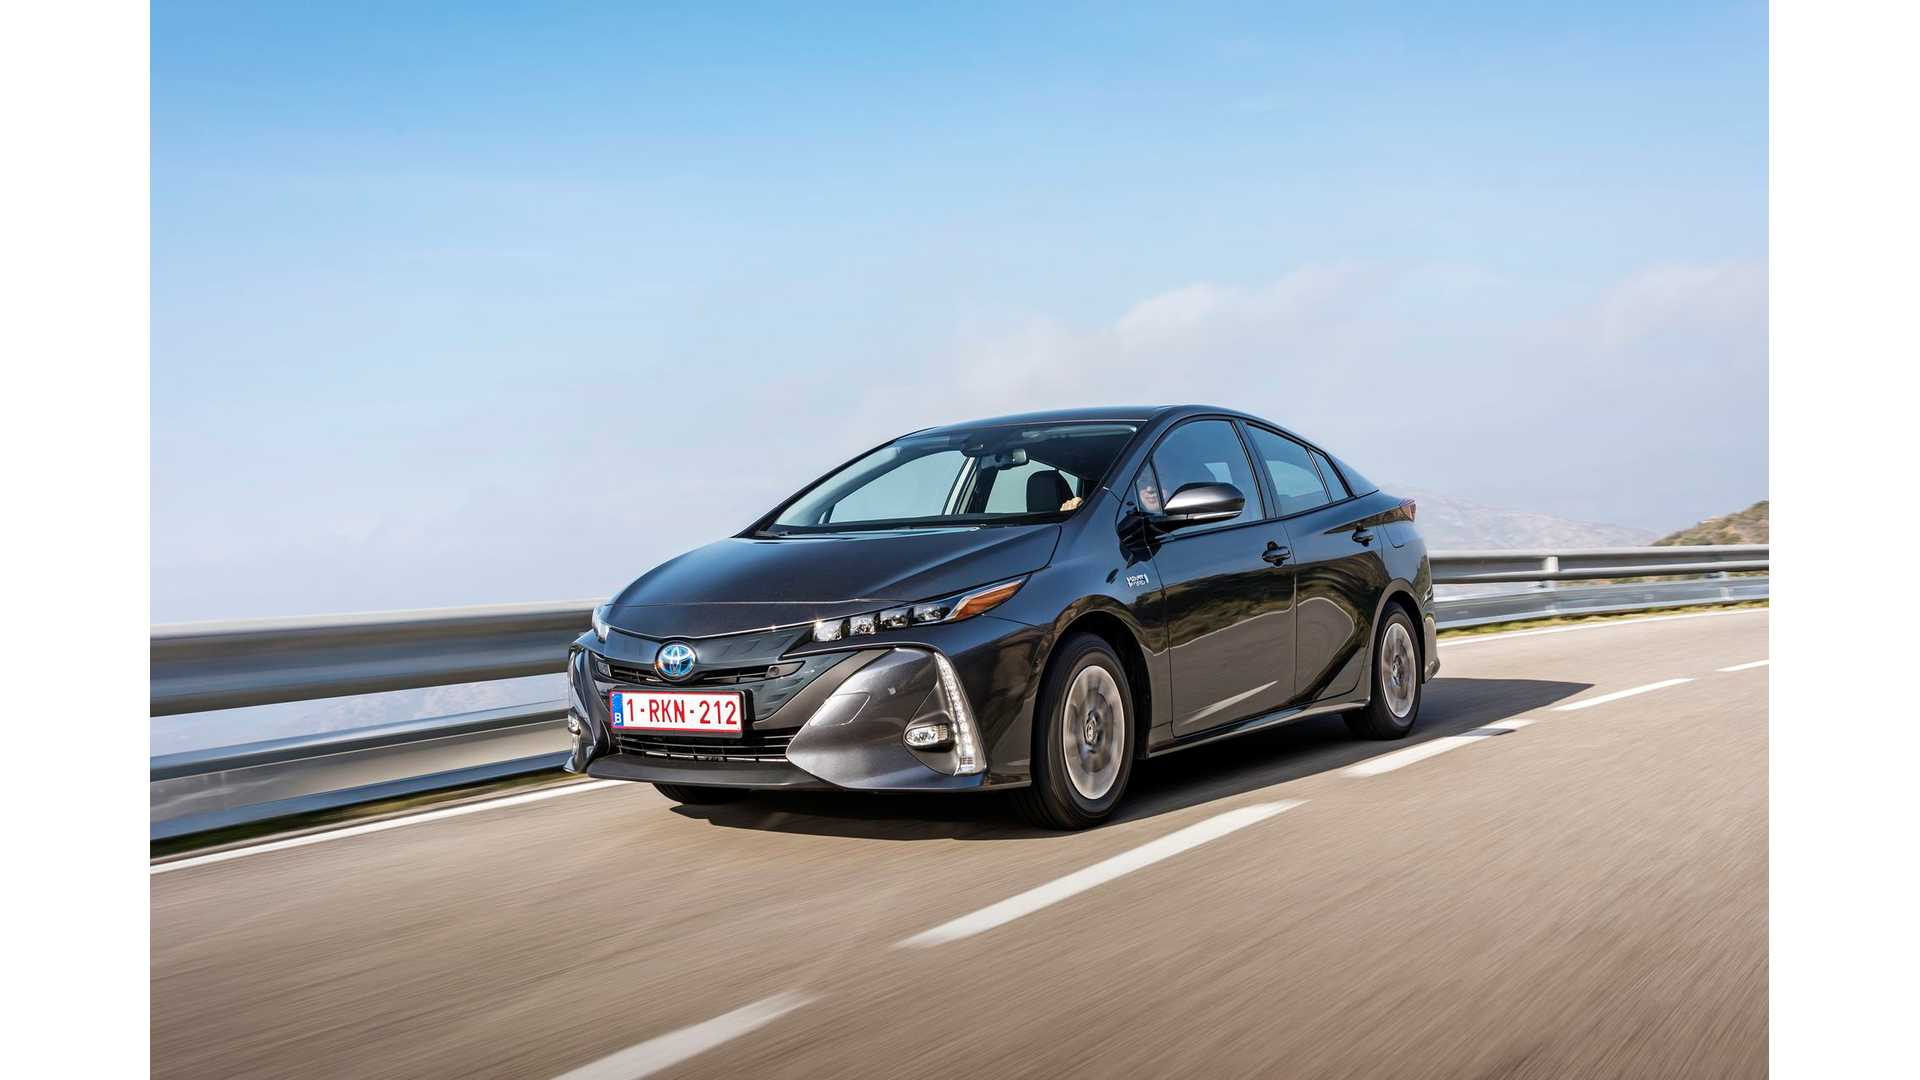 Toyota Prius Prime Test Drive Review From Uk Finds Other Compeors Closing In